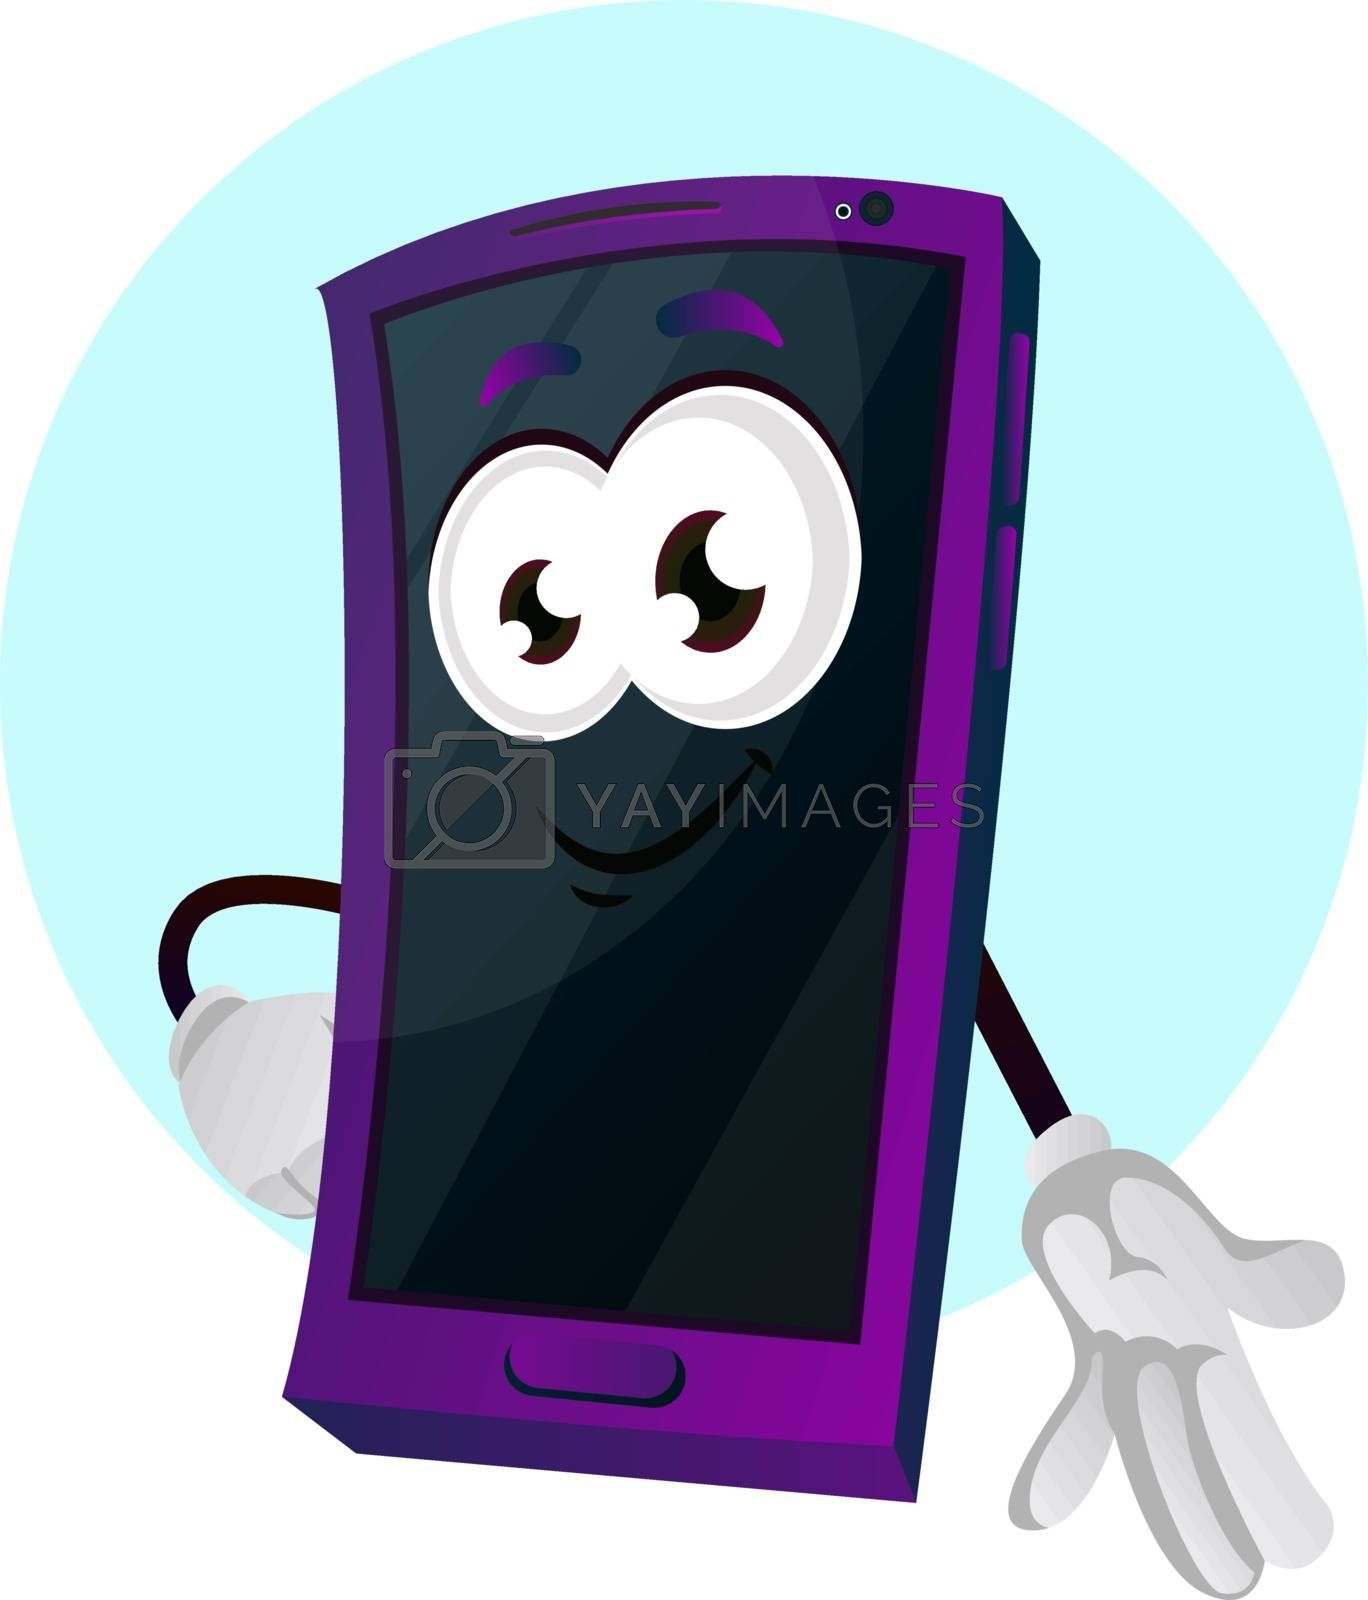 Royalty free image of Mobile emoji gesture illustration vector on white background by Morphart